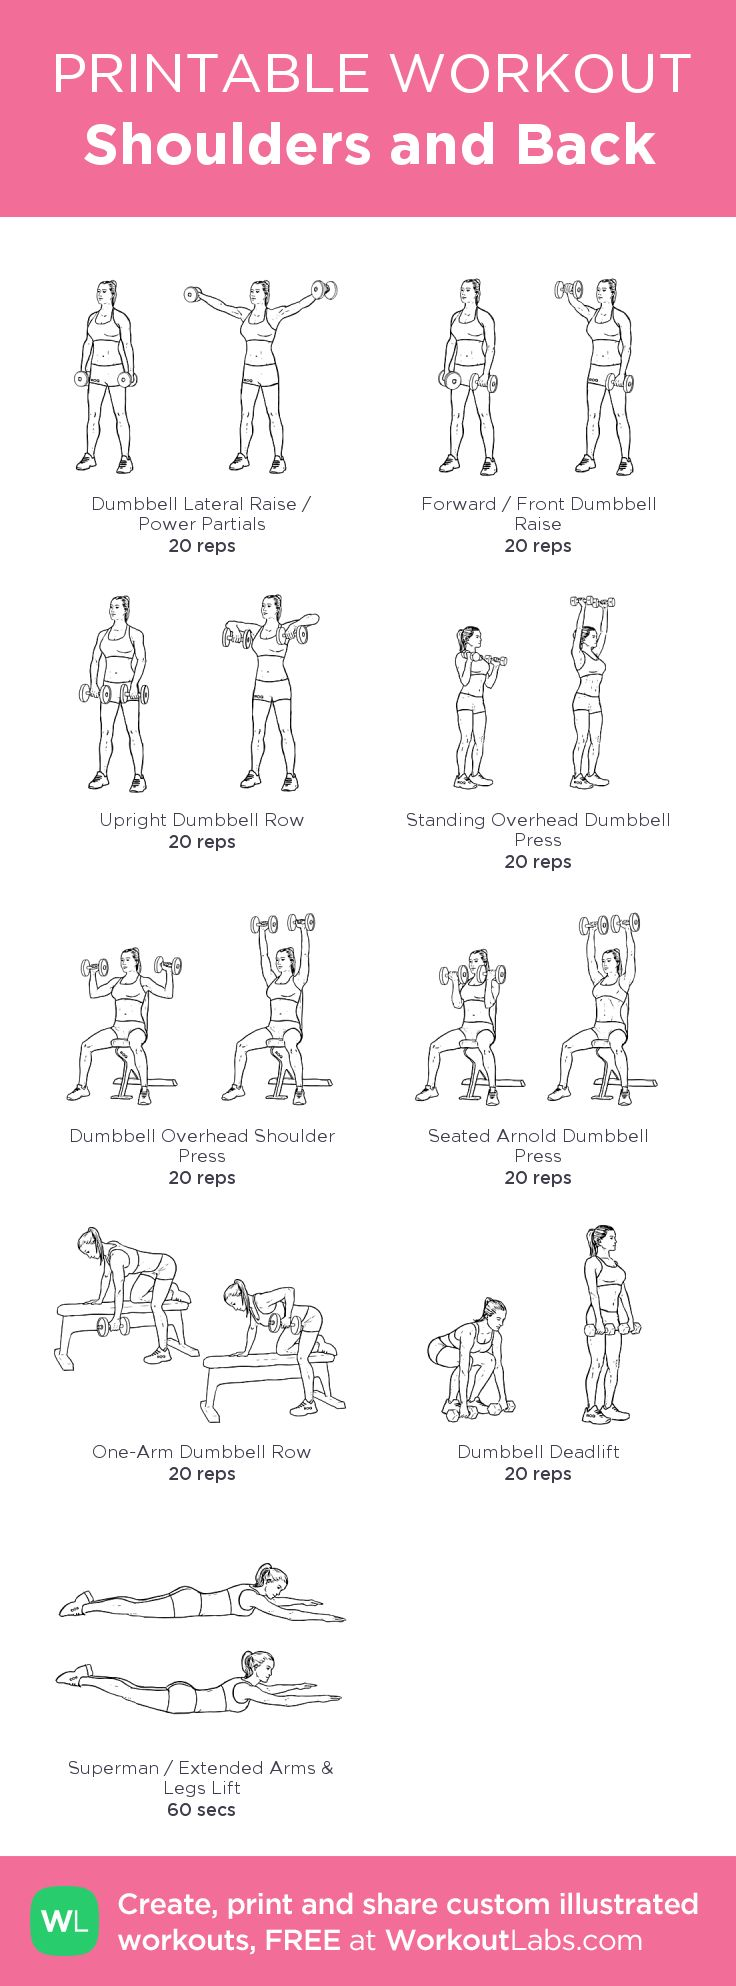 Shoulders and Back: my visual workout created at WorkoutLabs.com • Click through to customize and download as a FREE PDF! #customworkout